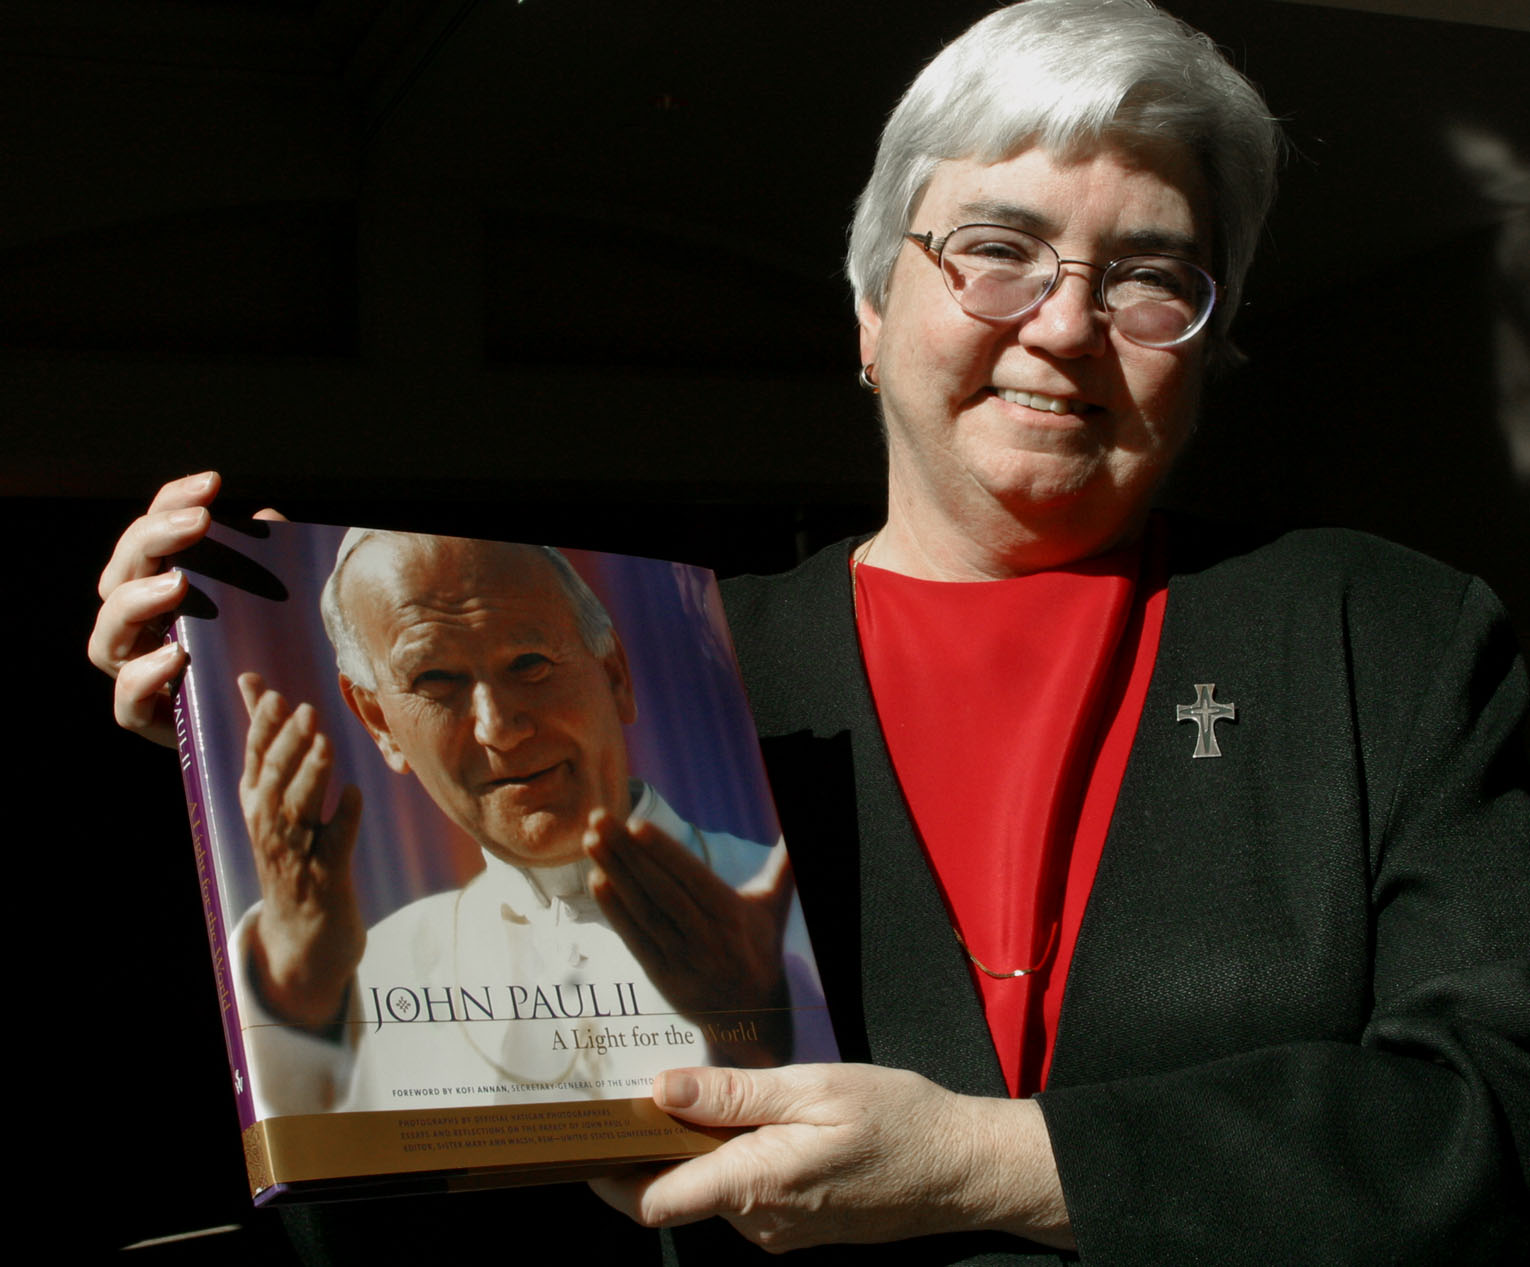 MERCY SISTER EDITS NEW PICTORIAL DOCUMENTARY ON POPE JOHN PAUL II